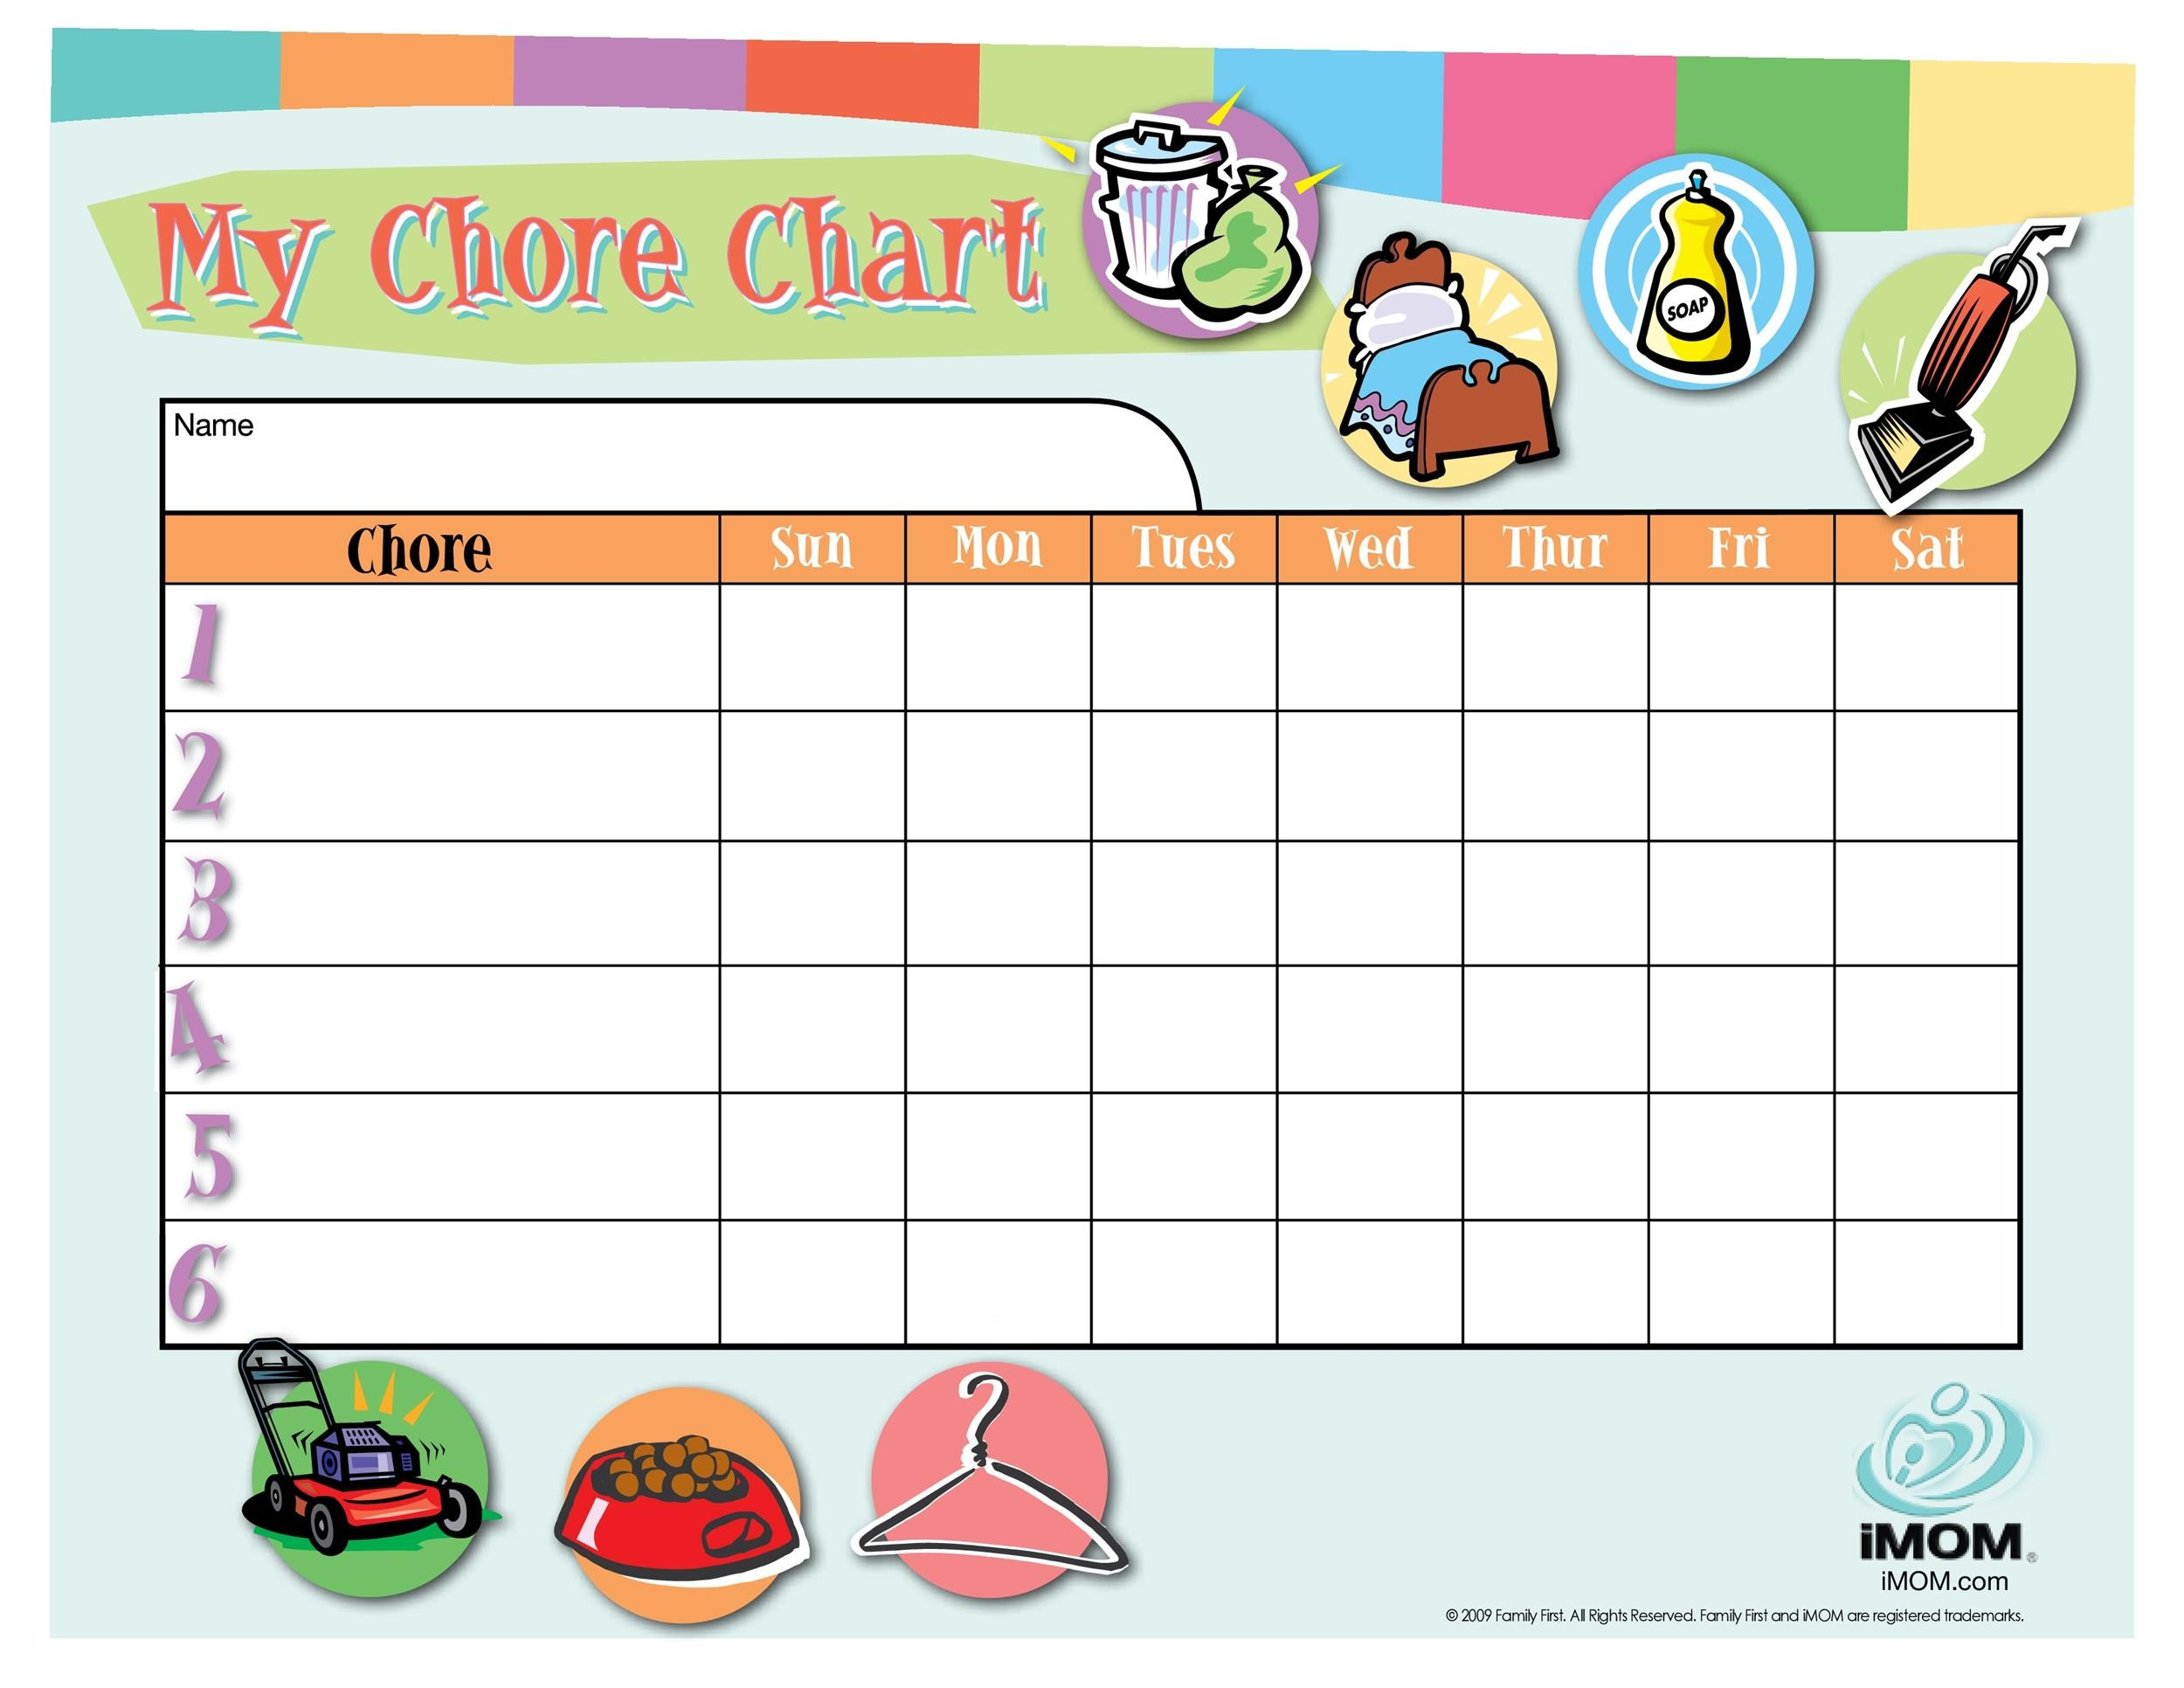 43 FREE Chore Chart Templates for Kids ᐅ Template Lab